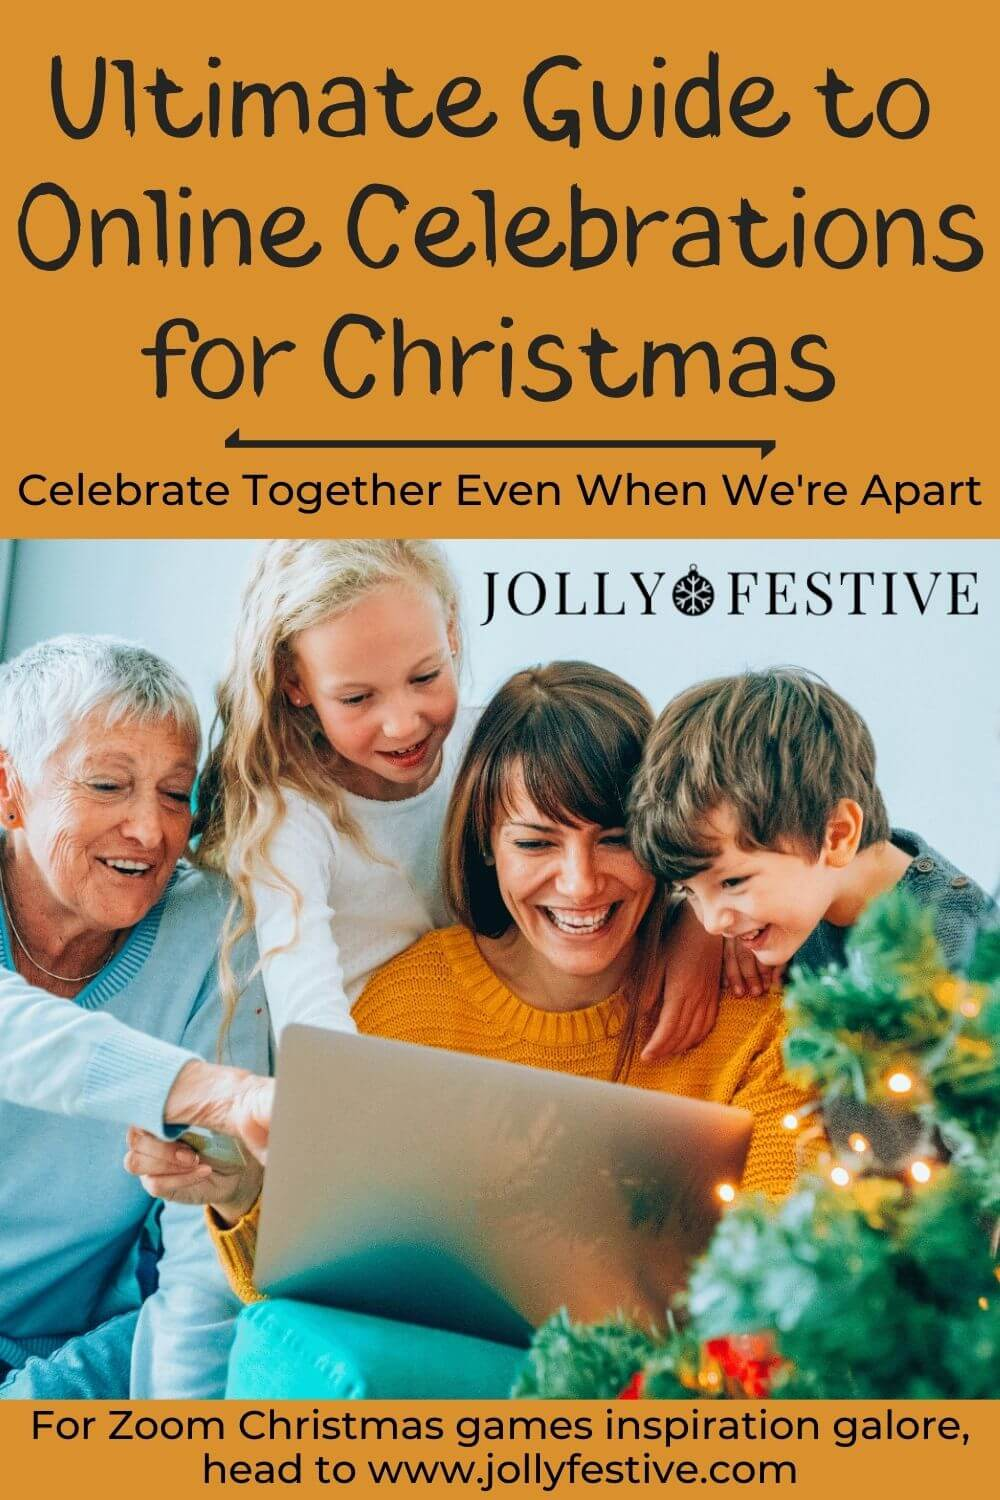 Ultimate Guide to Online Celebrations for Christmas